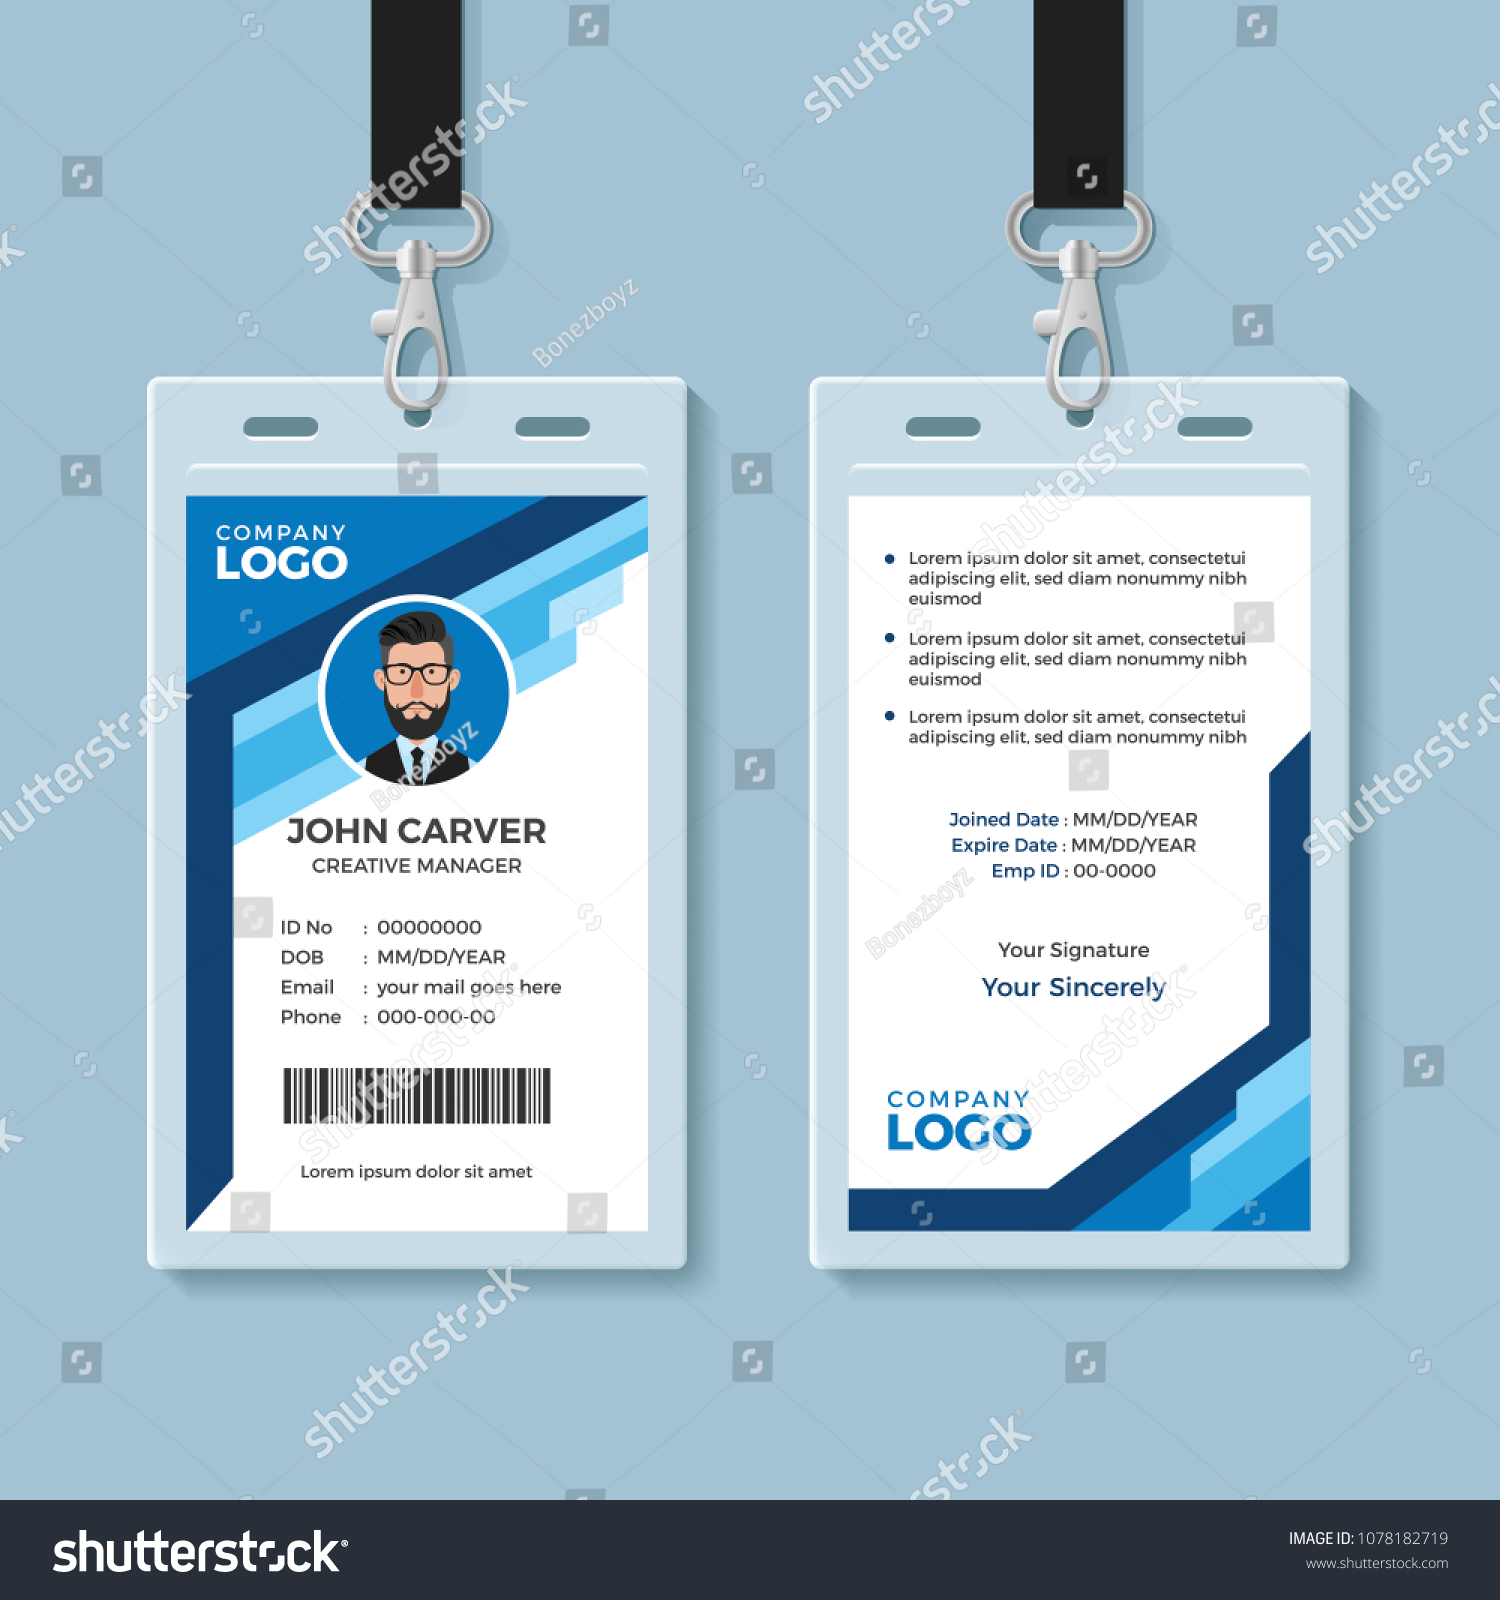 blue graphic employee id card template のベクター画像素材